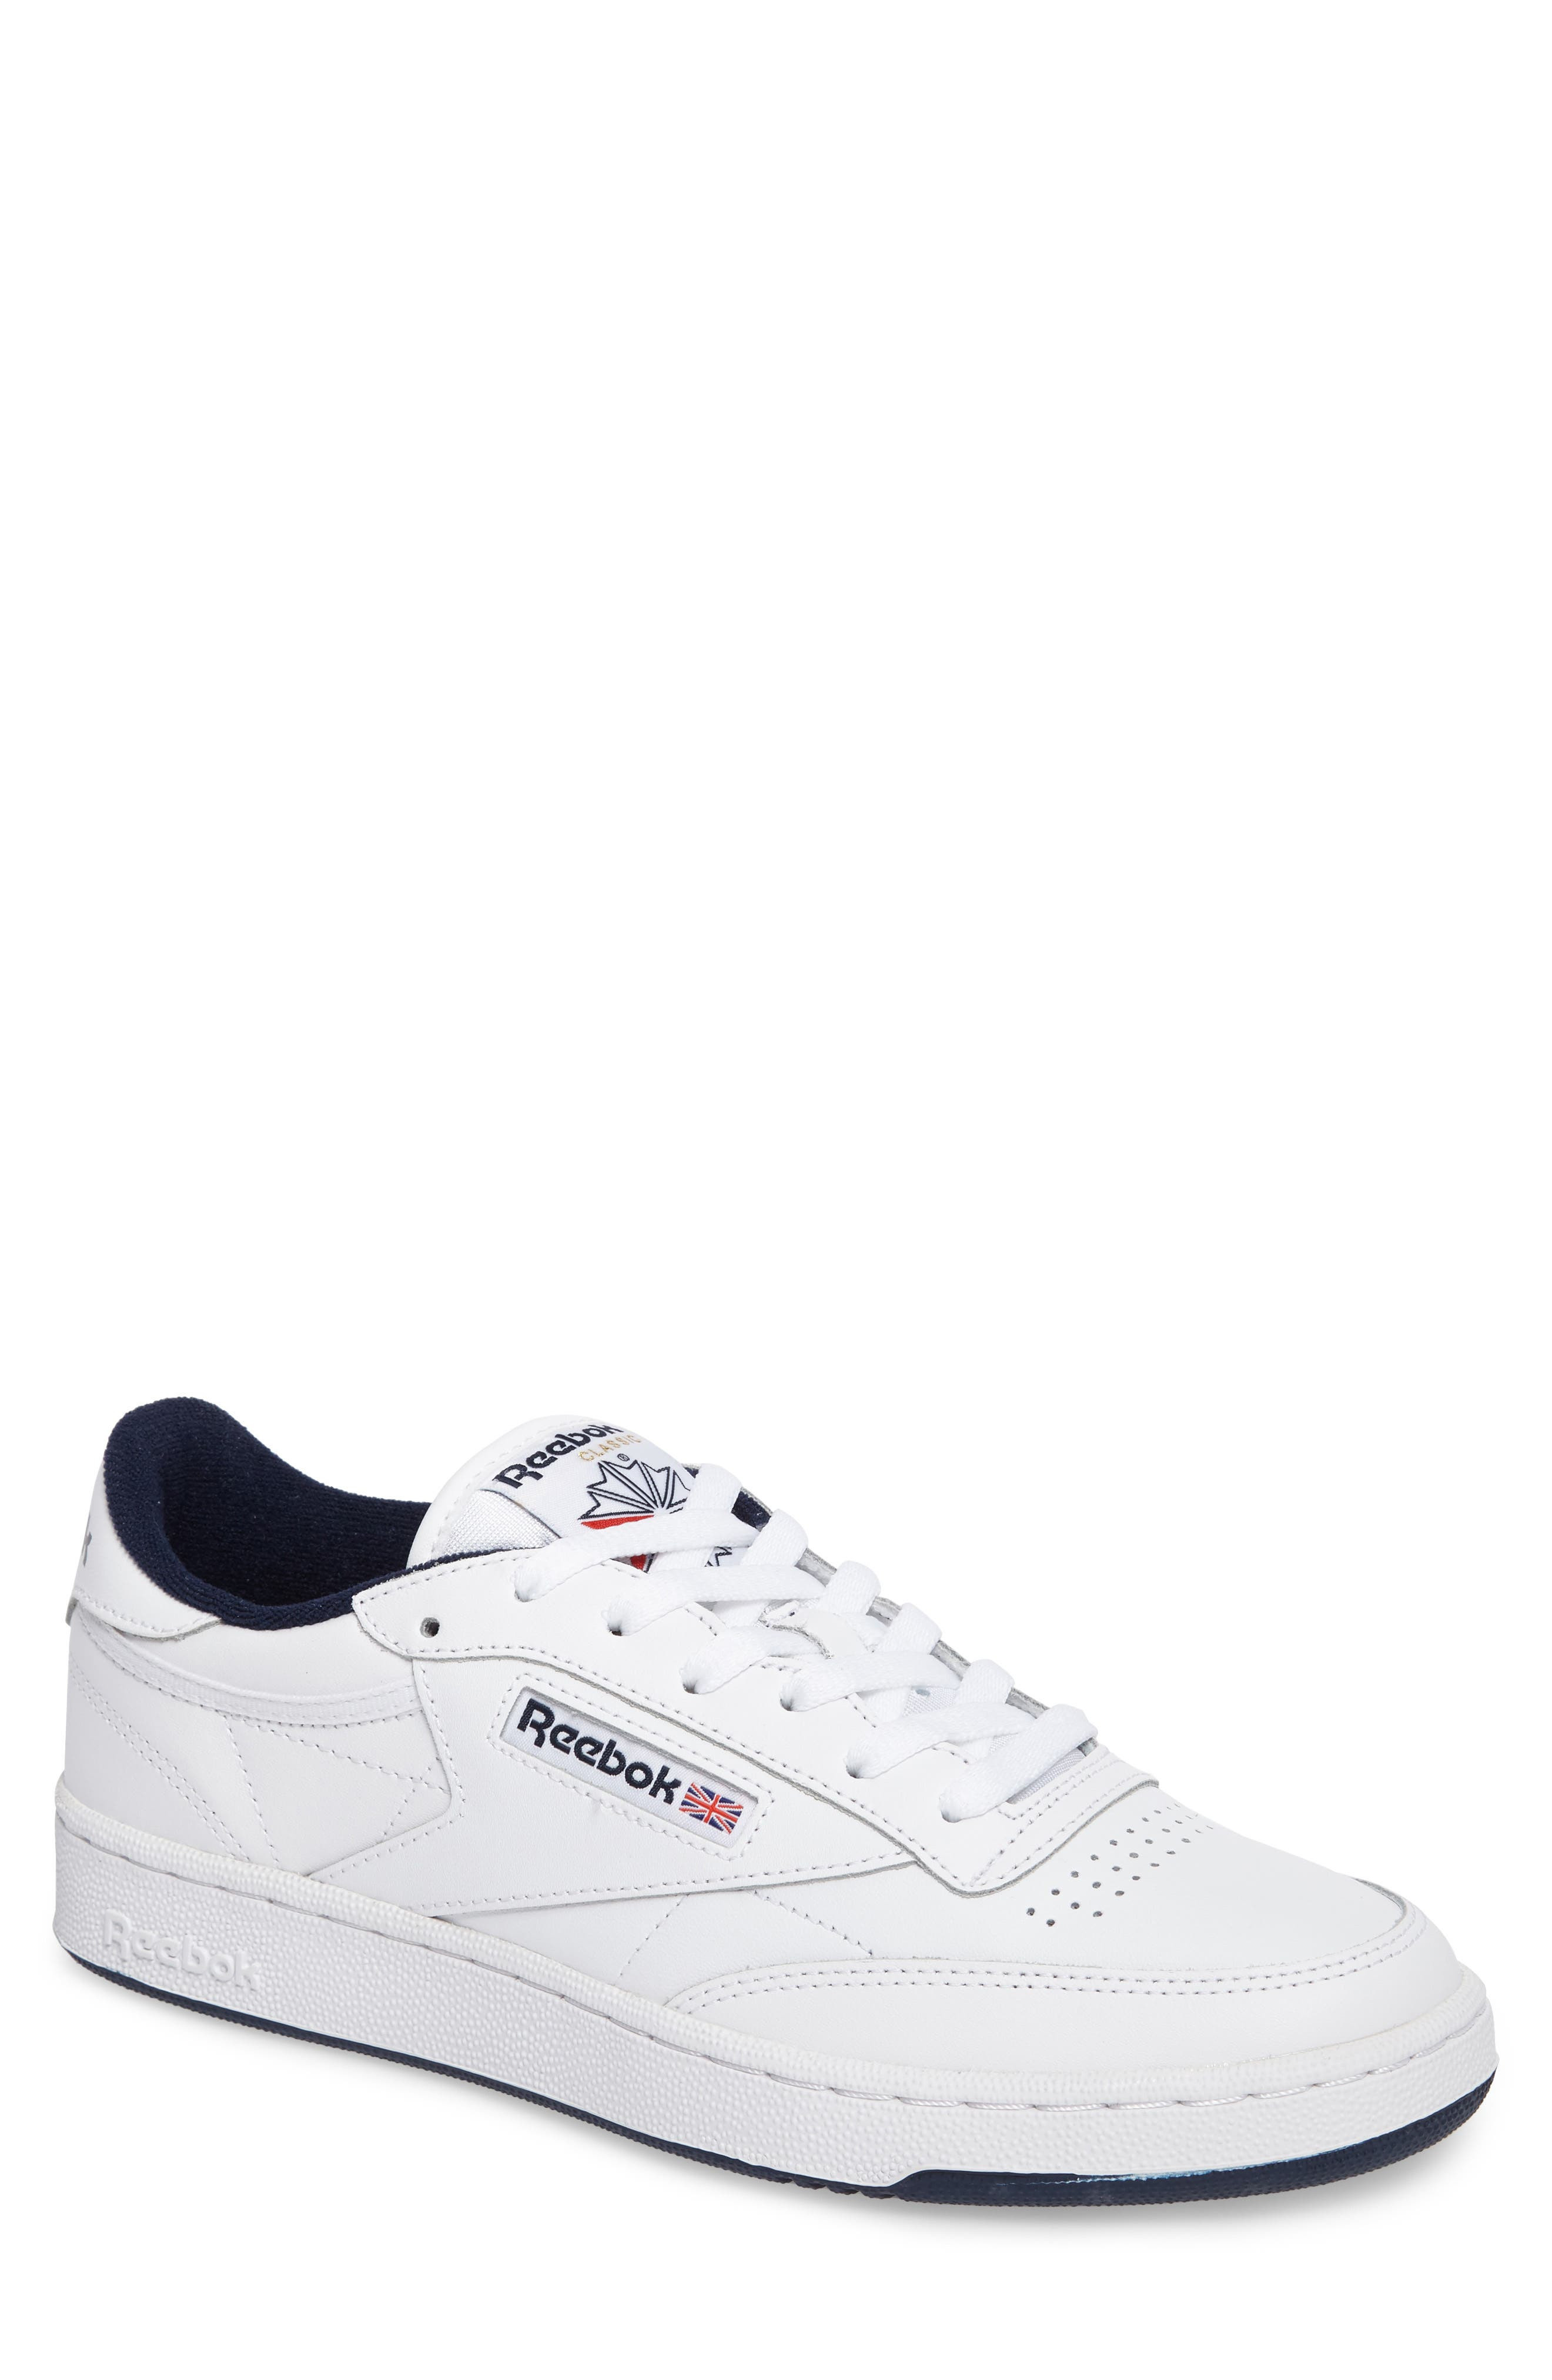 Club C 85 Sneaker,                             Main thumbnail 1, color,                             WHITE/ NAVY